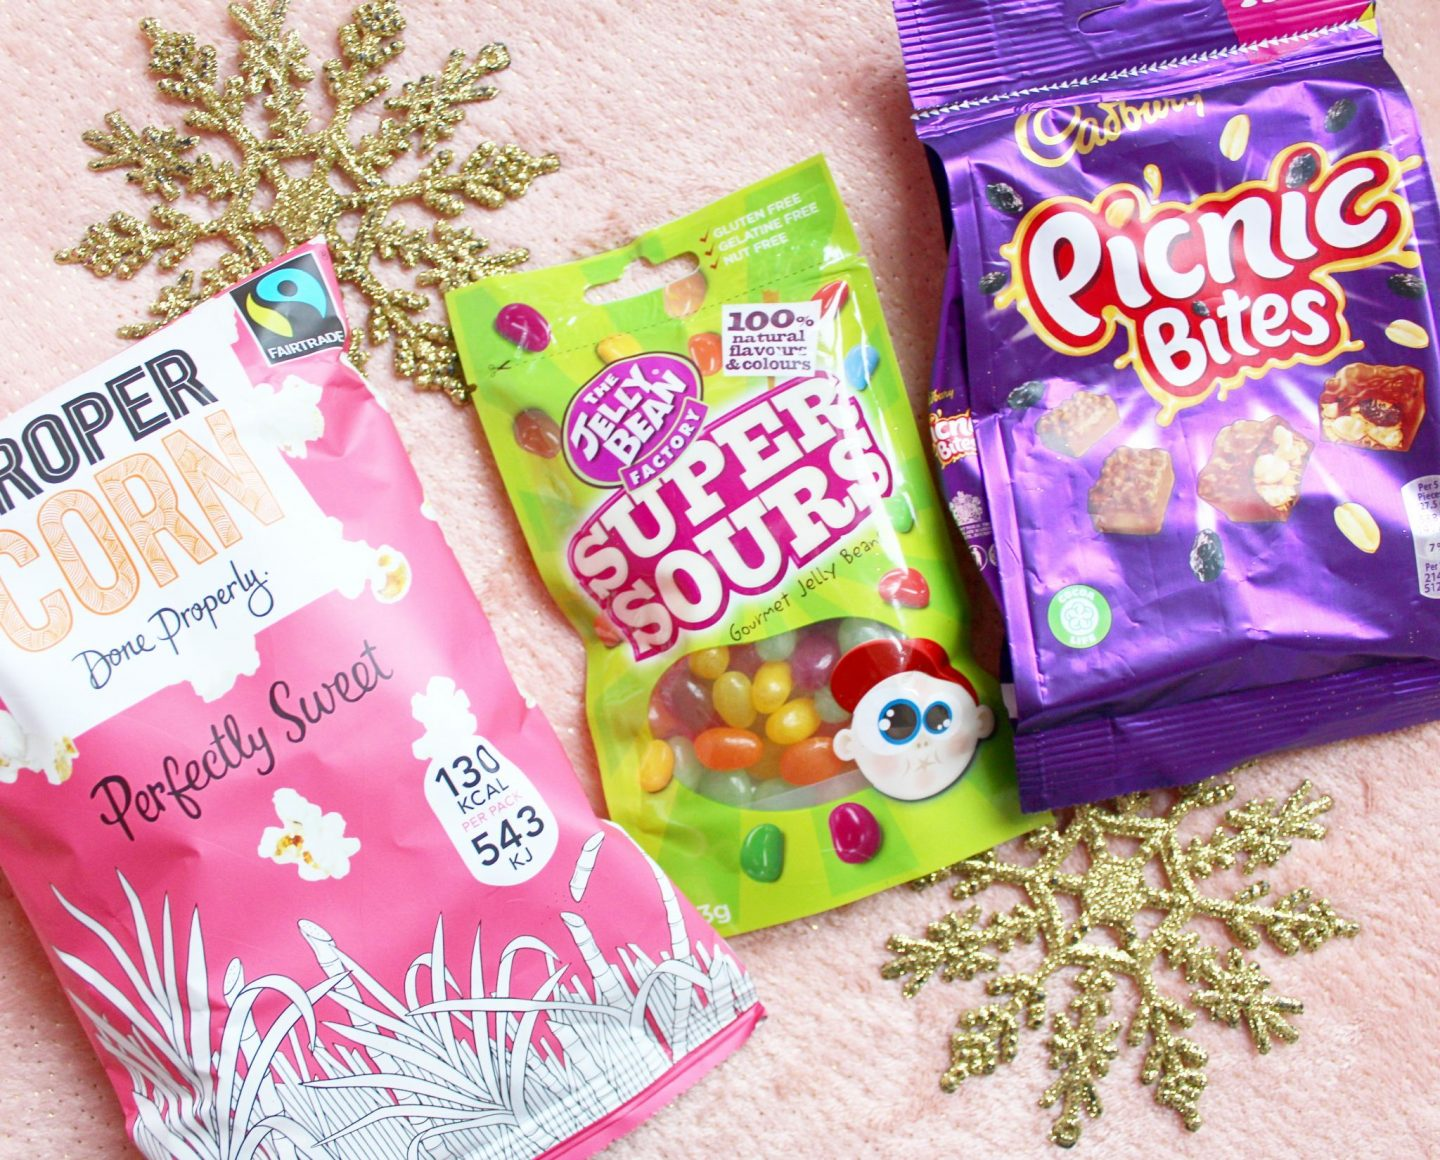 Degustabox | The Jelly Bean Factory, PROPERCORN & and Cadbury Picnic